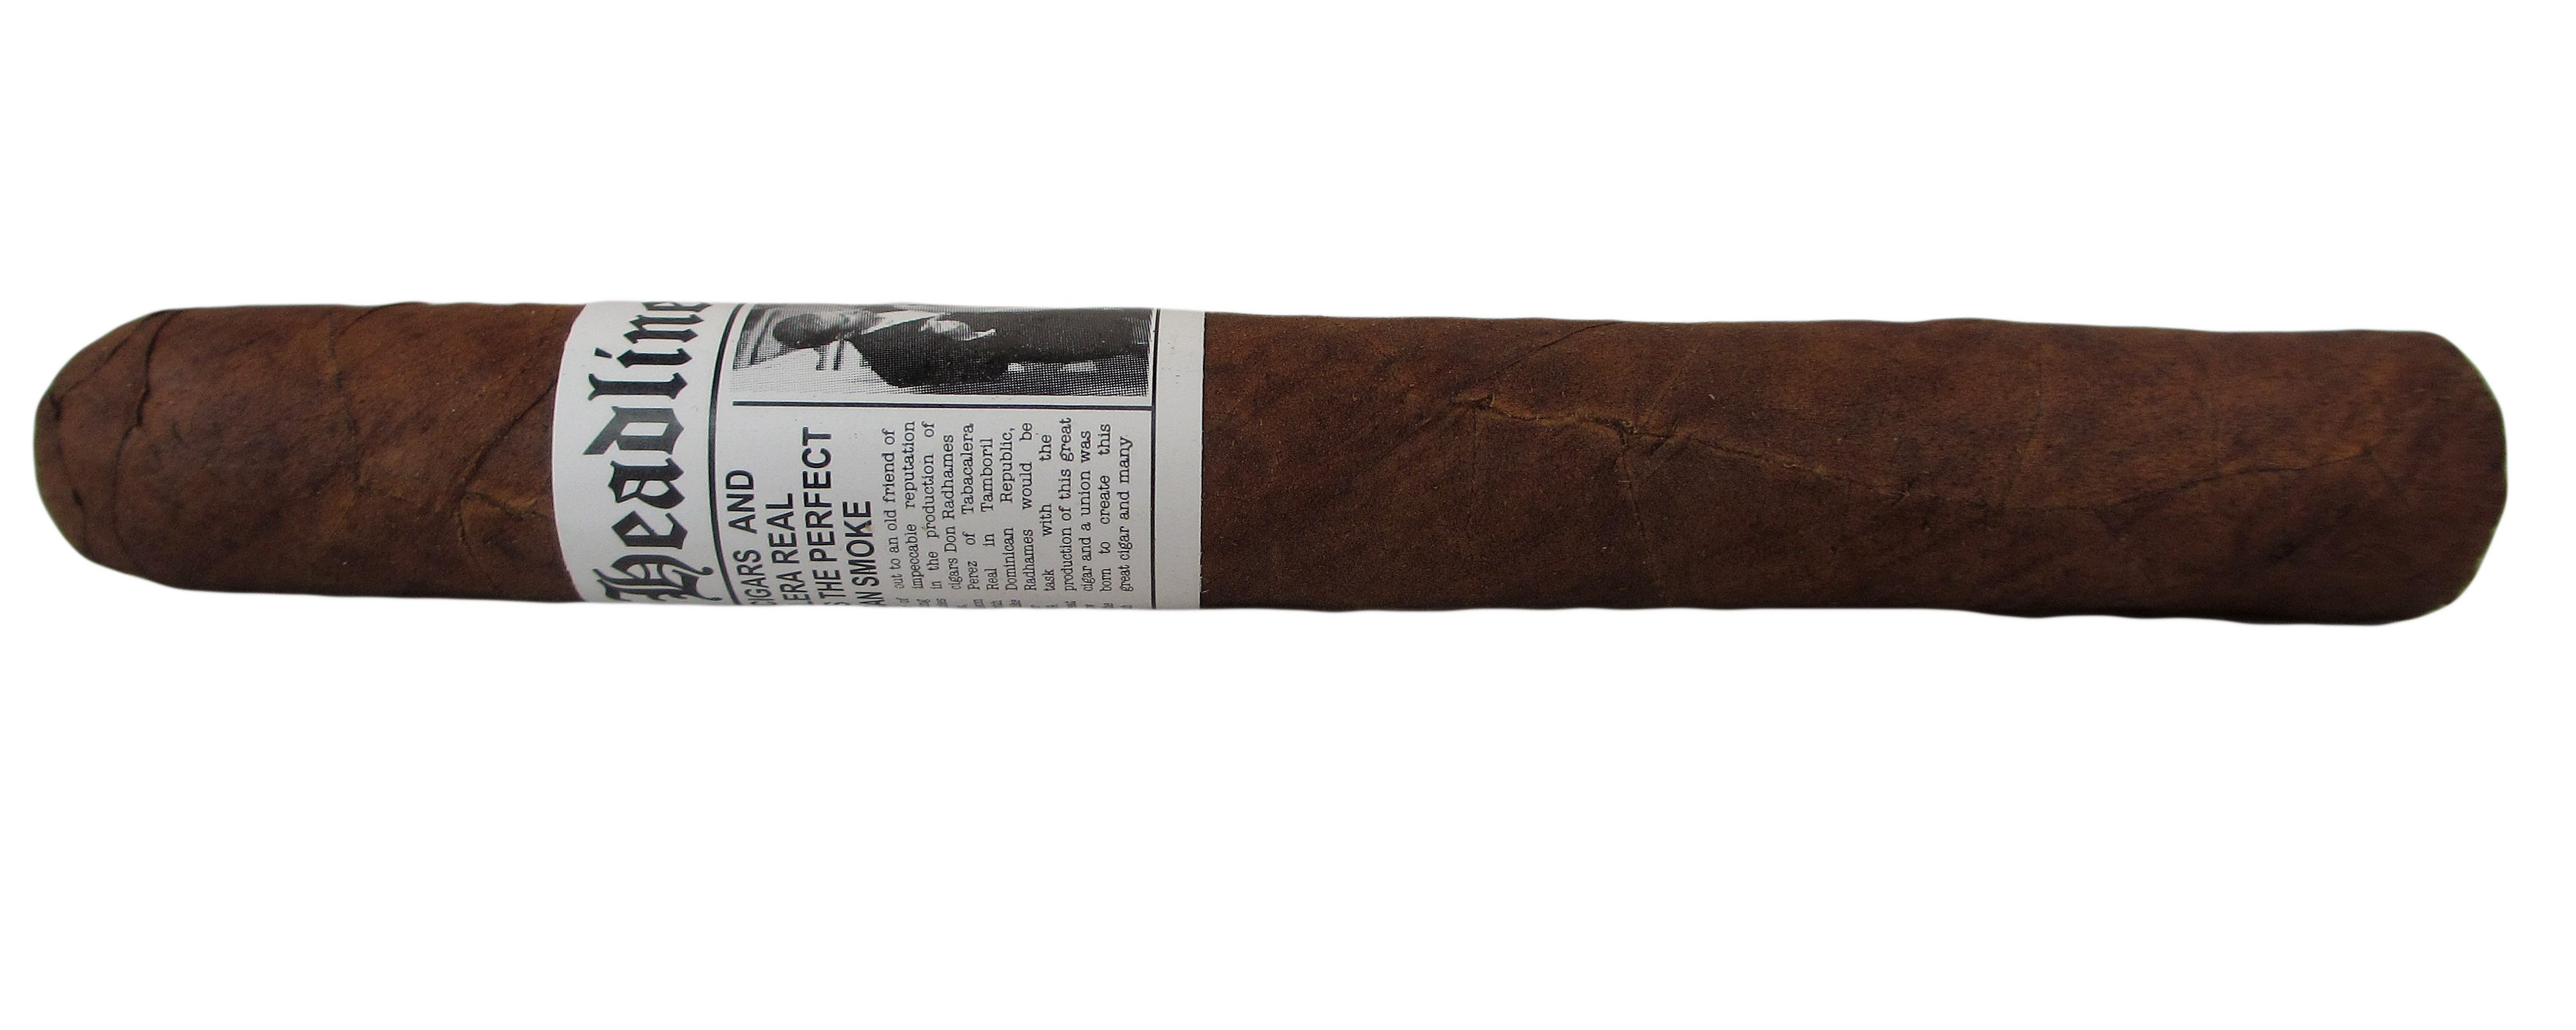 Blind Cigar Review: Fusion | Headlines Original 1st Edition Page 3